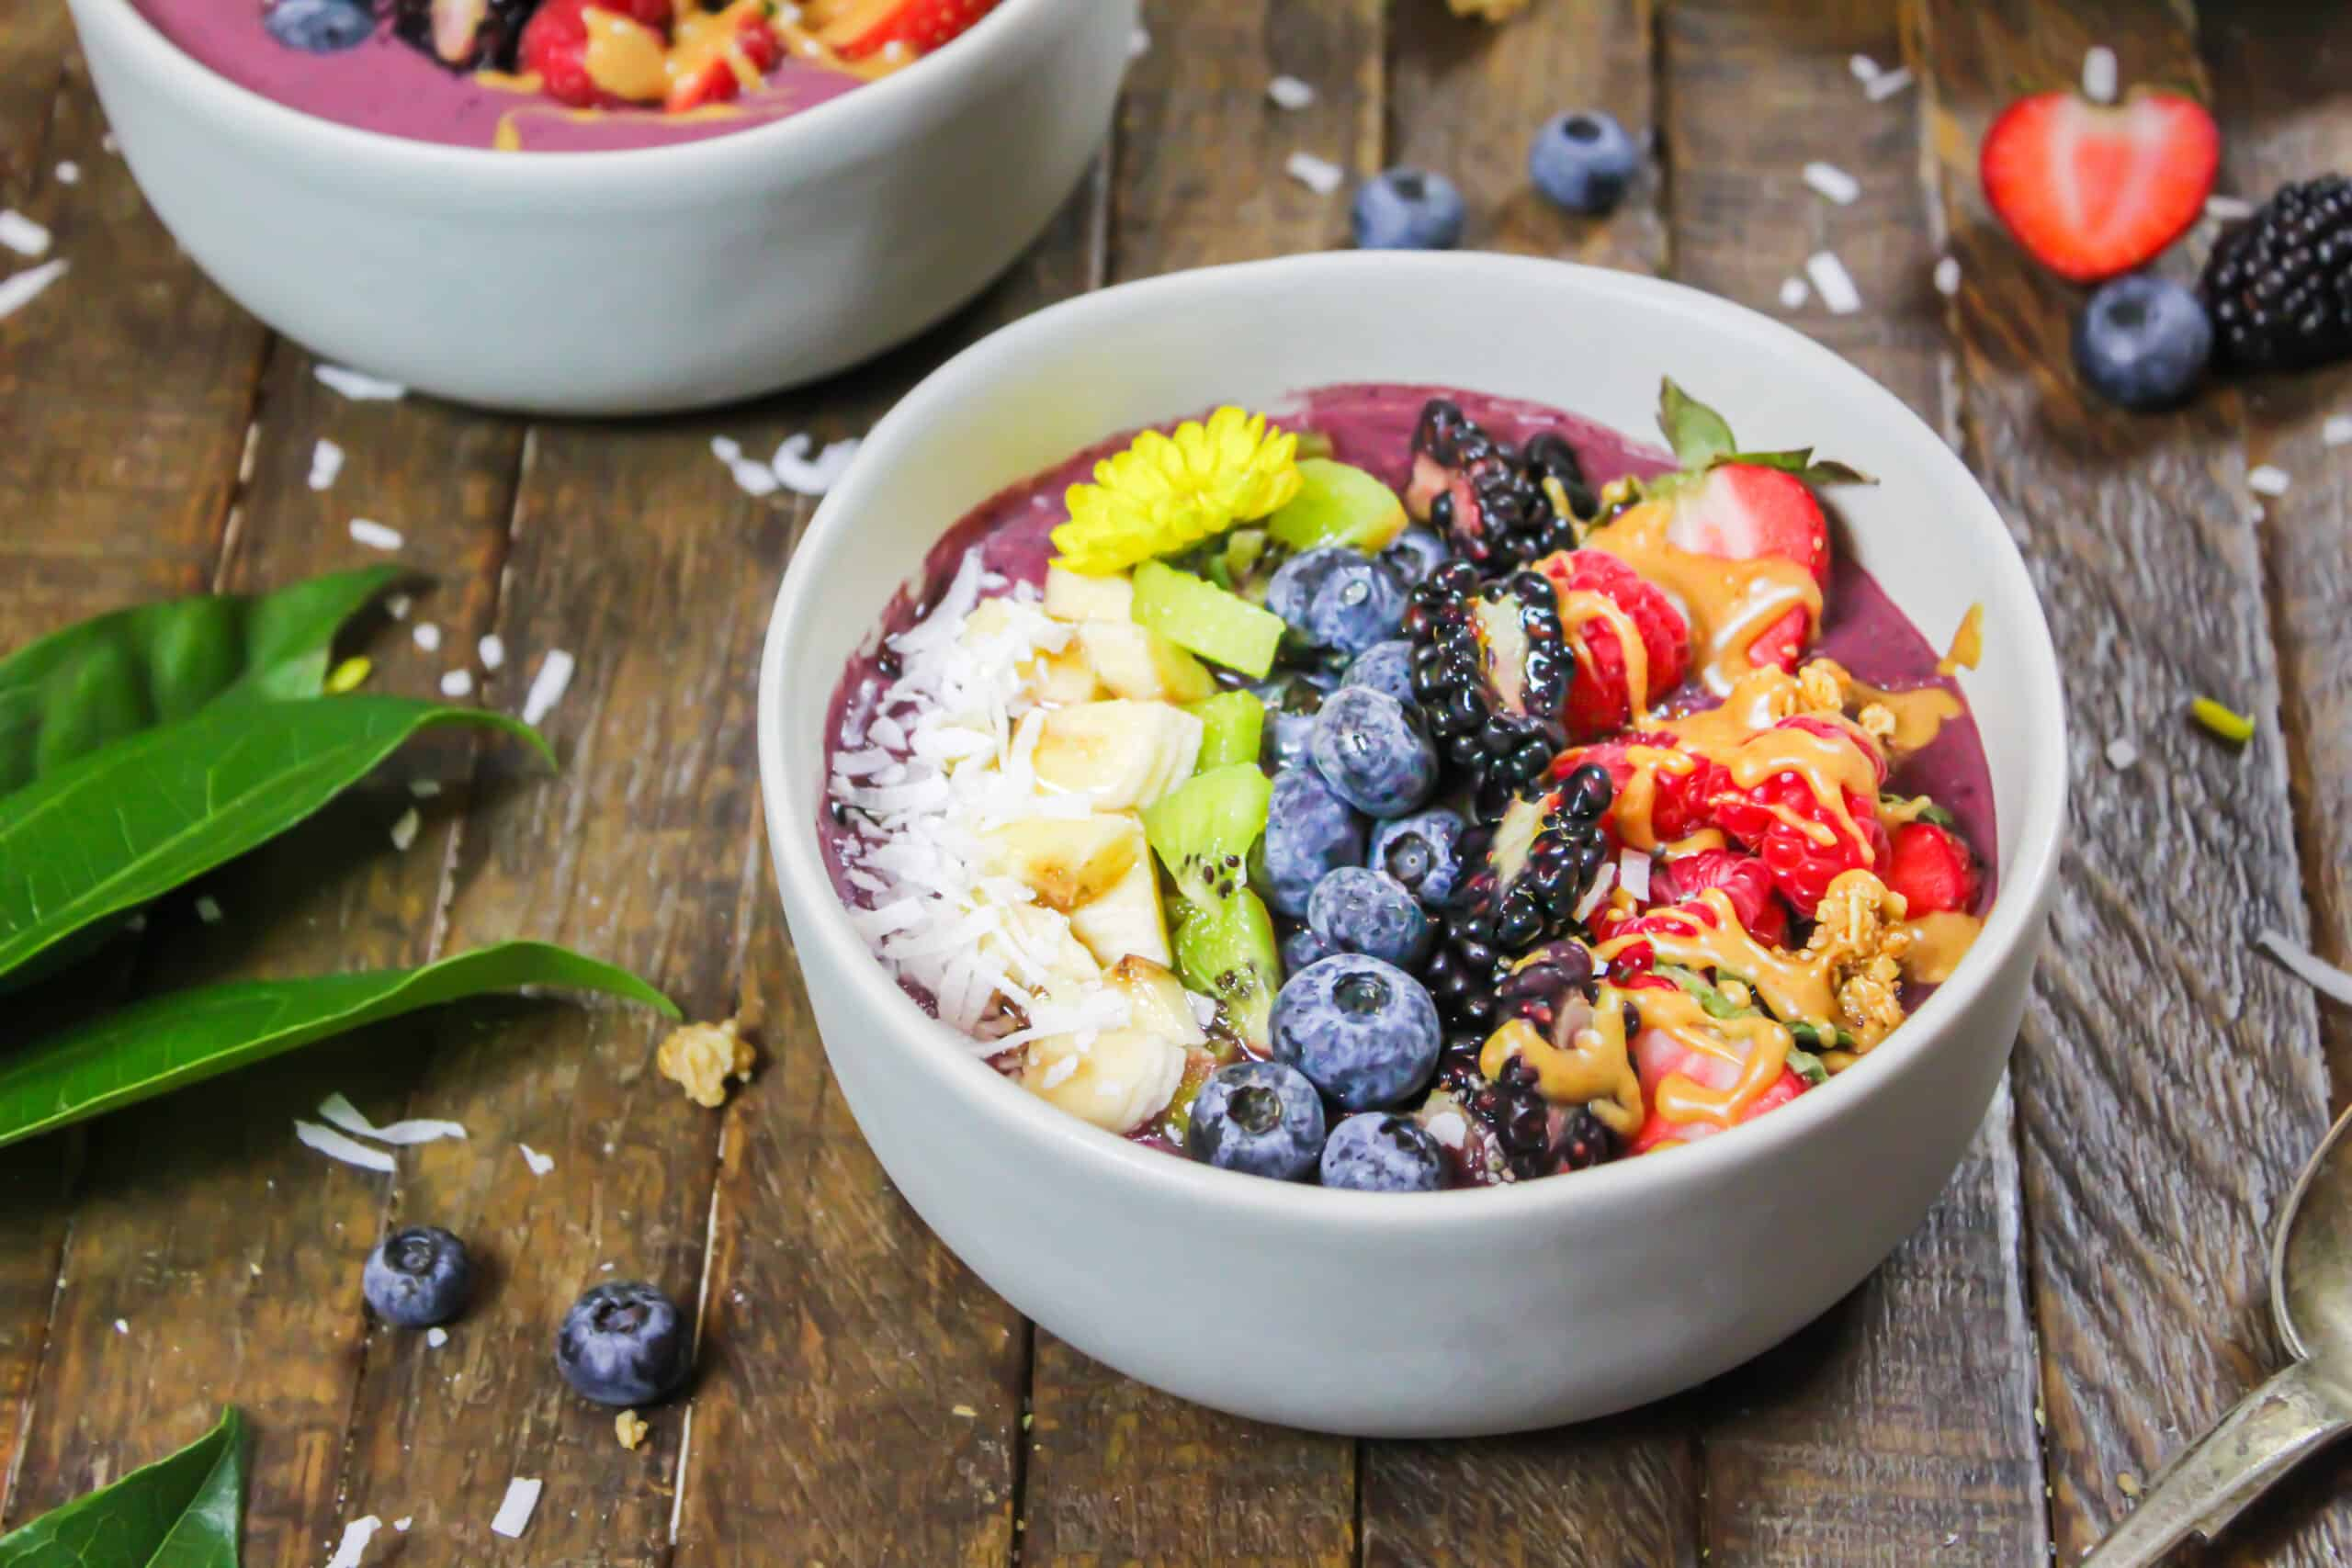 image of an acai bowl made with peanut butter and decorate with fresh fruit, granola, and some edible flowers